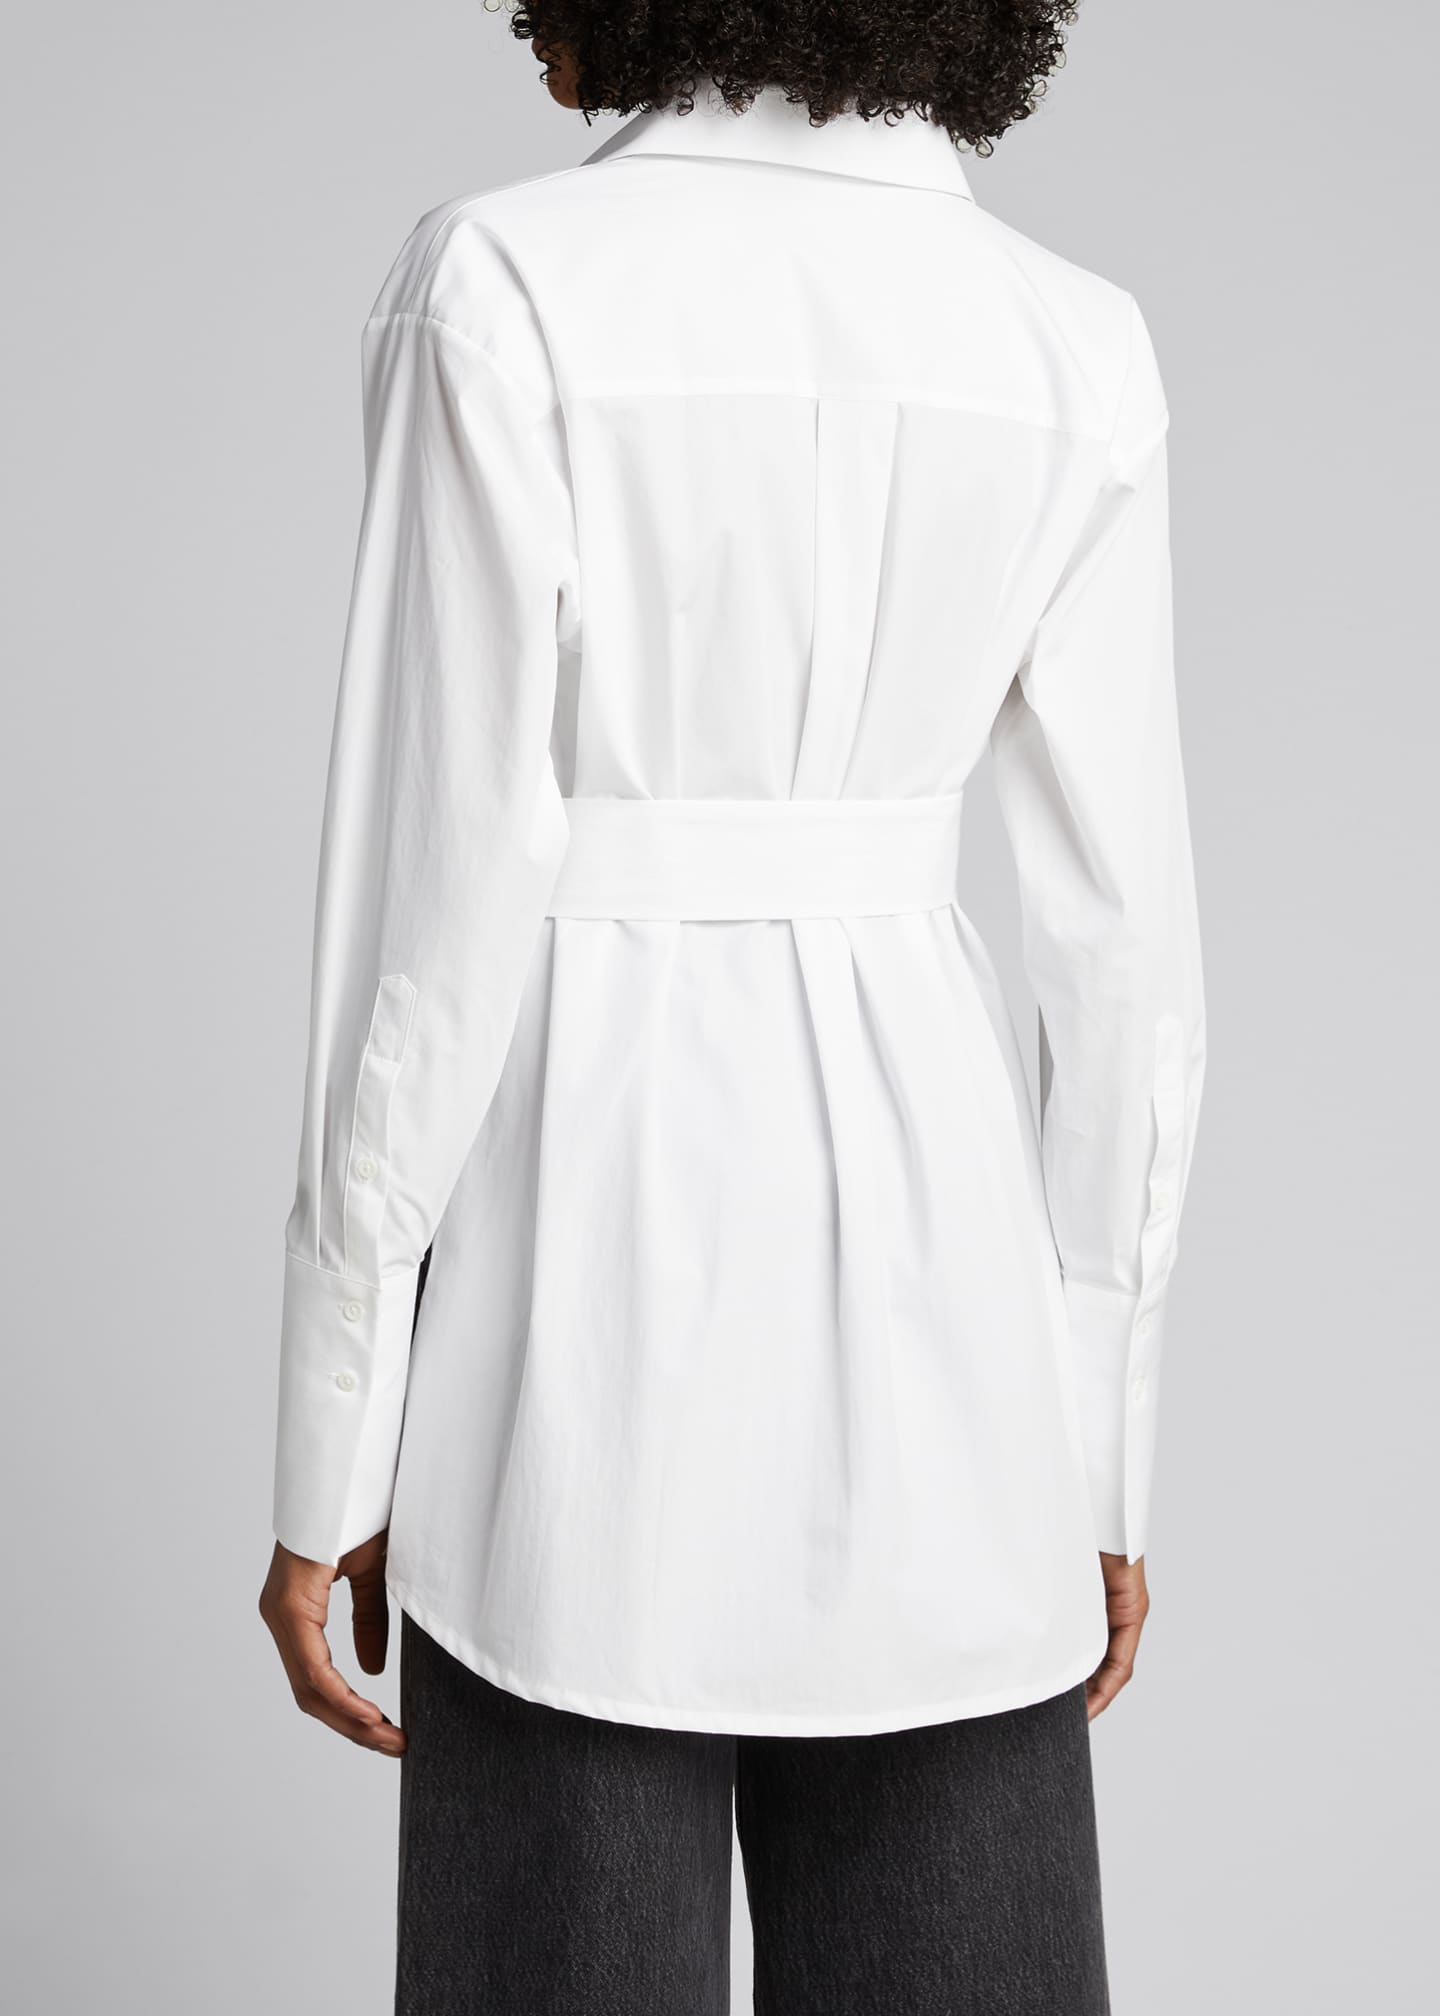 Image 2 of 5: Casablanca Belted Shirt